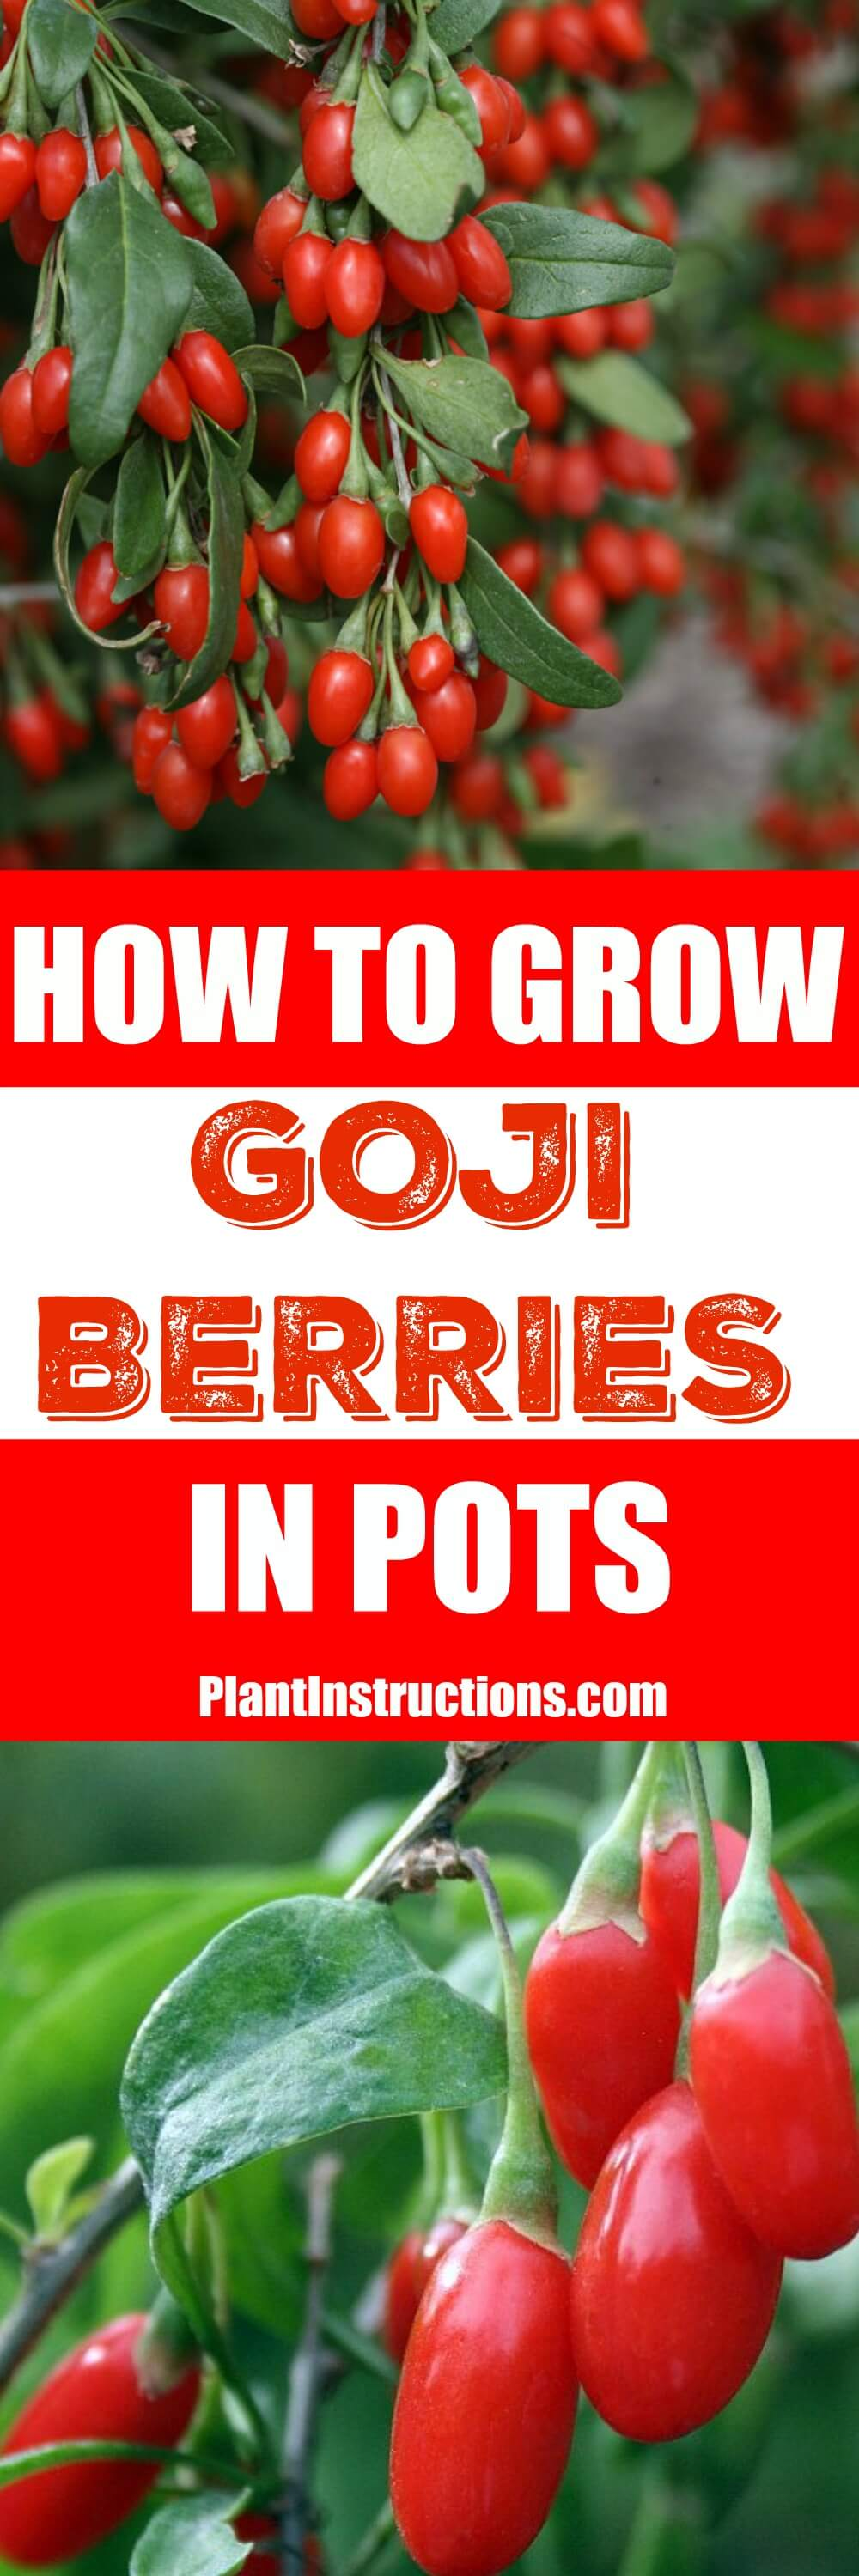 Goji berries are considered one of the best superfoods you can have, but they\'re hard to find, so learn how to grow goji berries and have them all the time!